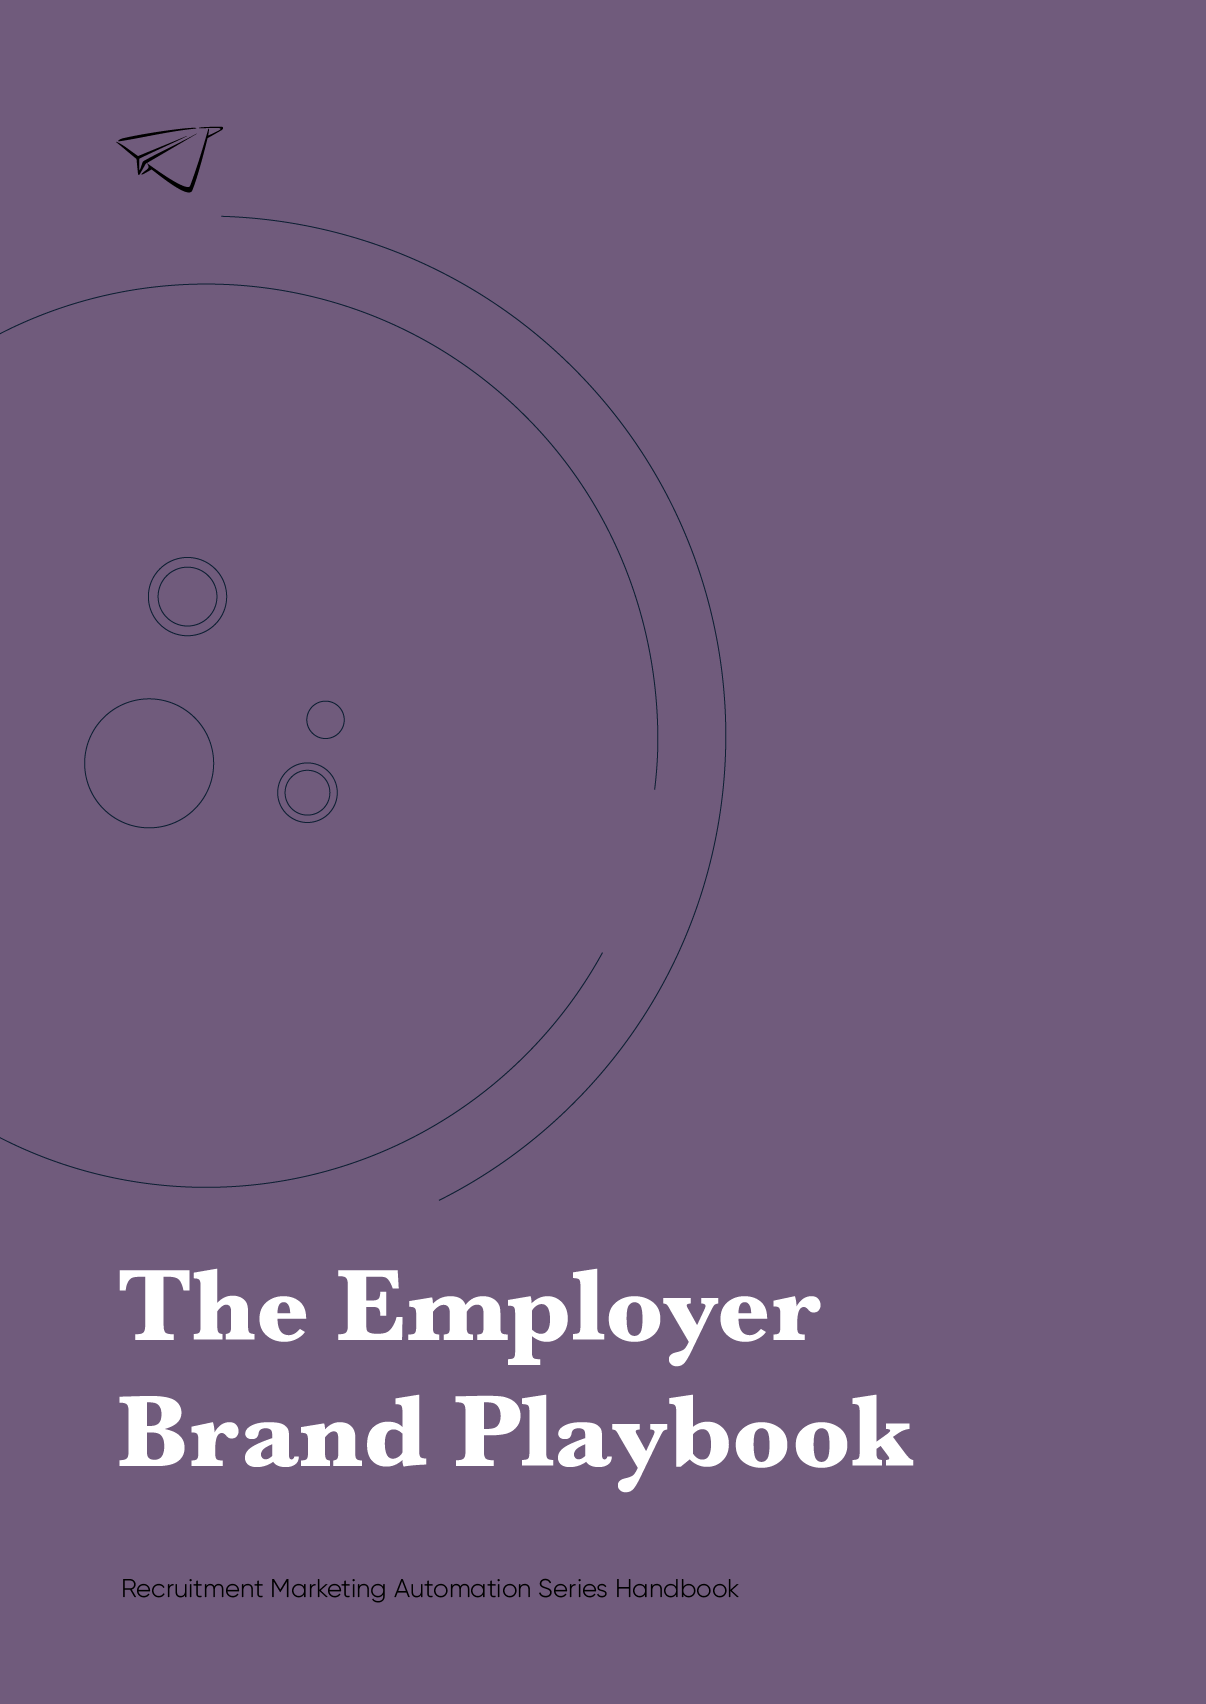 The Employer Brand Playbook